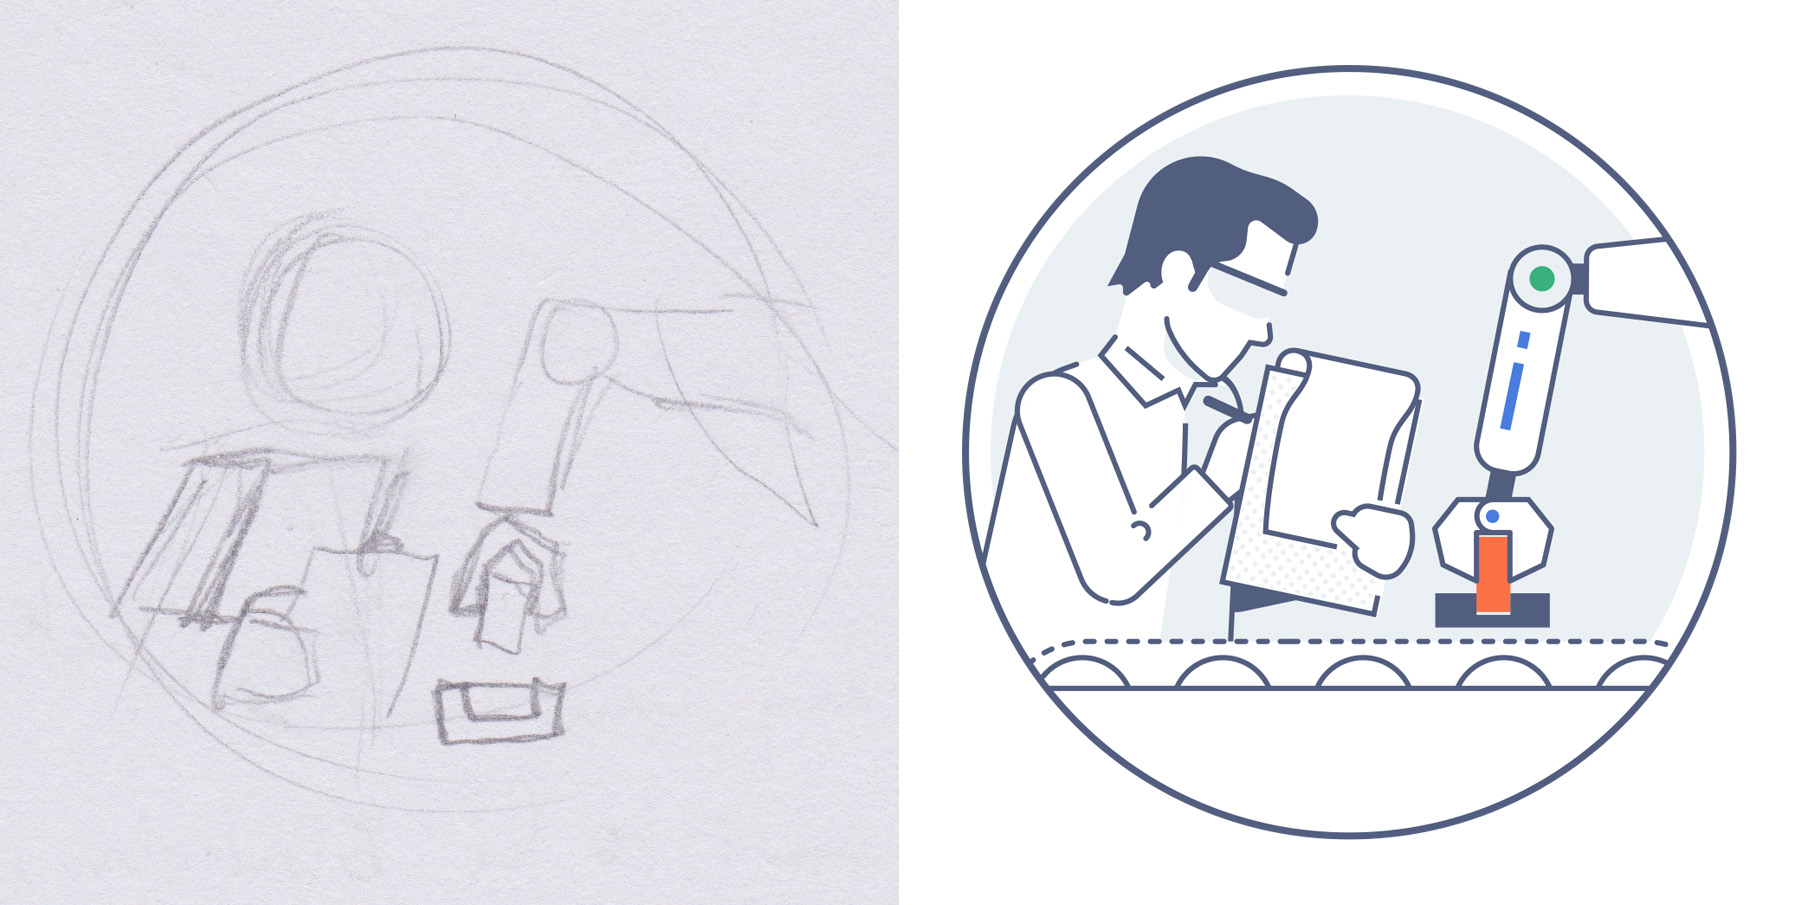 Design for a factory worker, seen briefly in the video at approximately 00:32:00